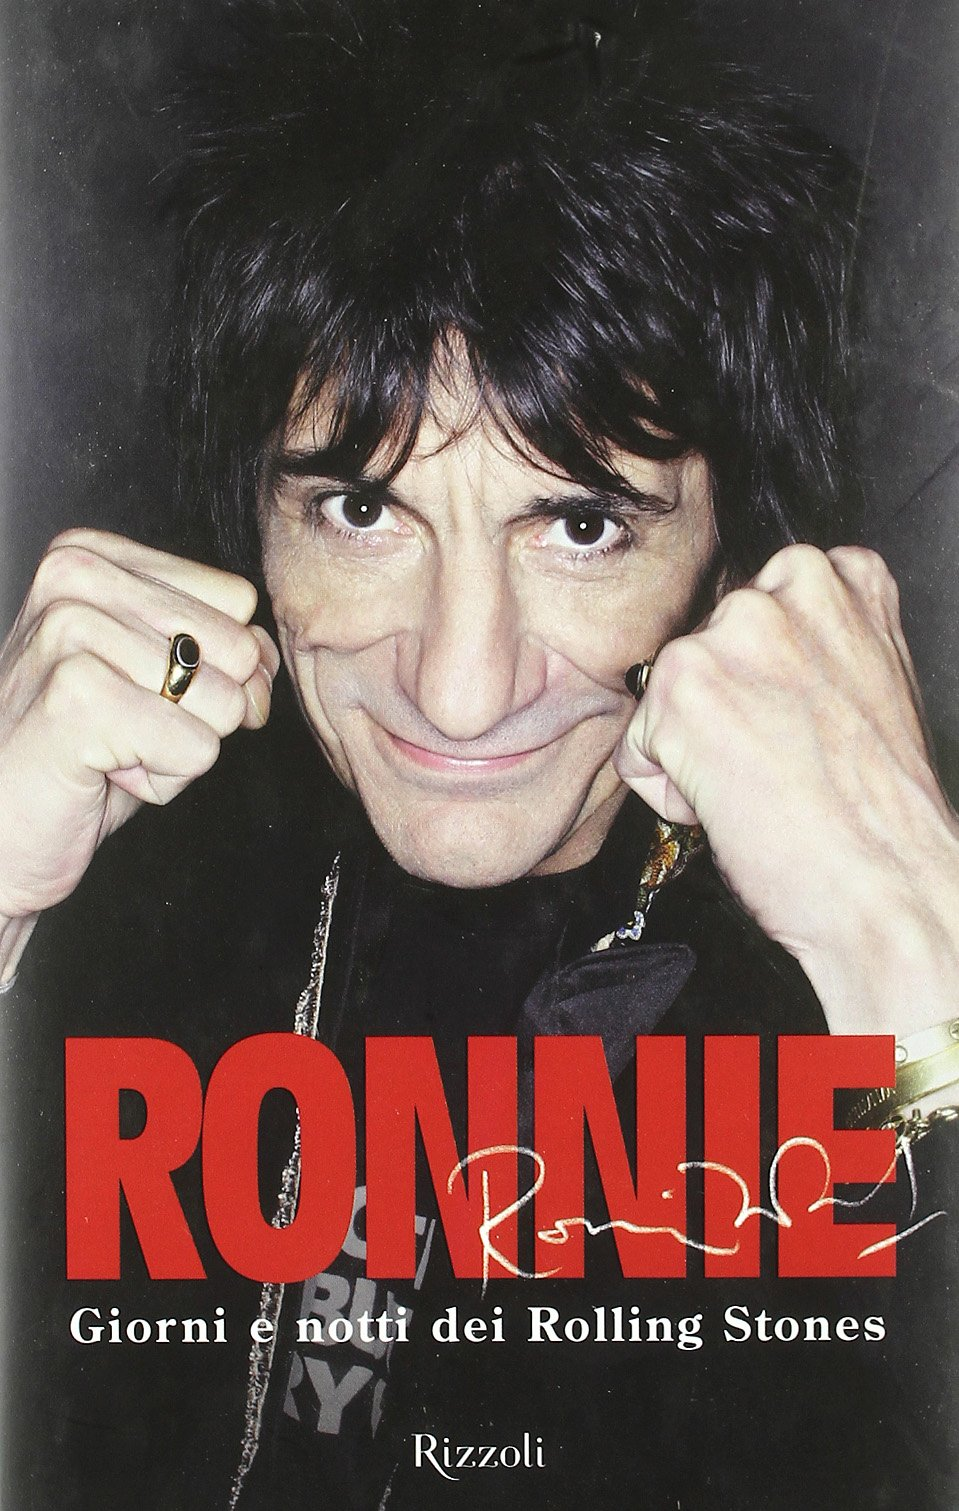 Ronnie Wood dating storia